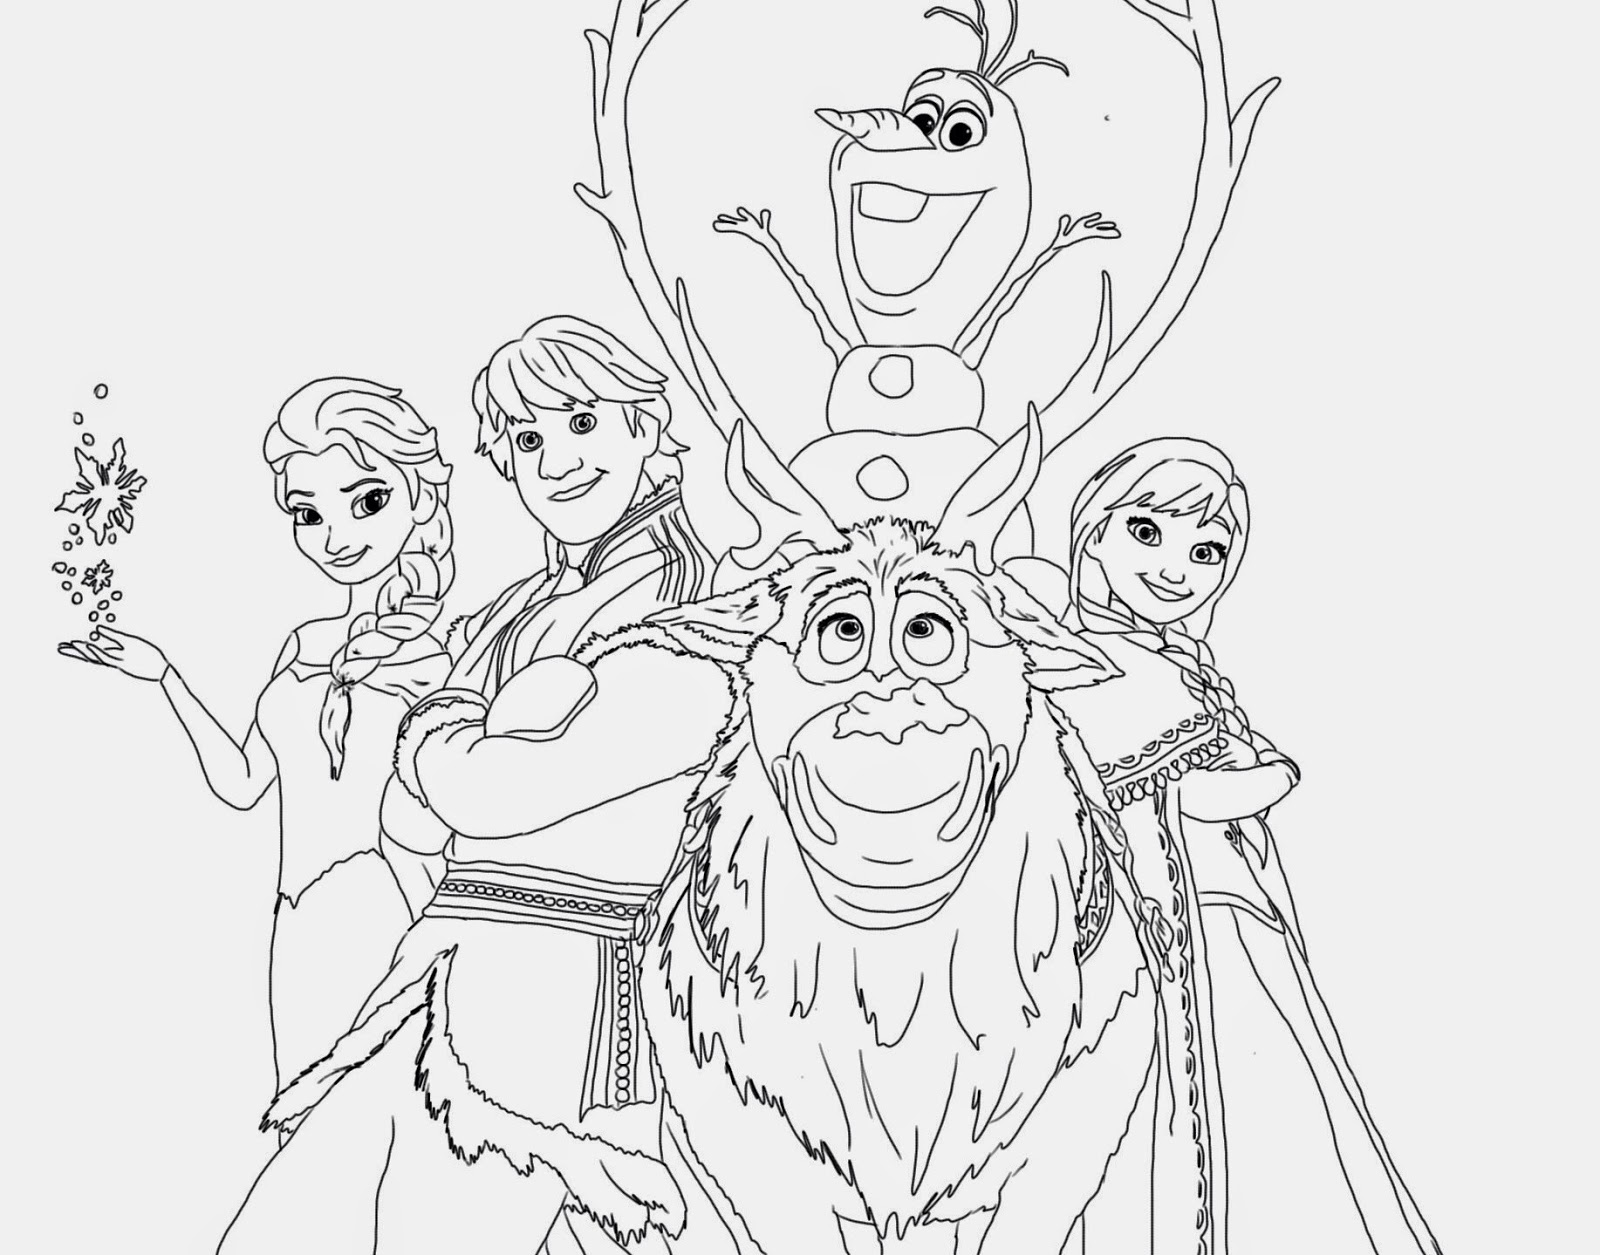 pictures of frozen to color oloff from frozen party invitations ideas of color pictures frozen to